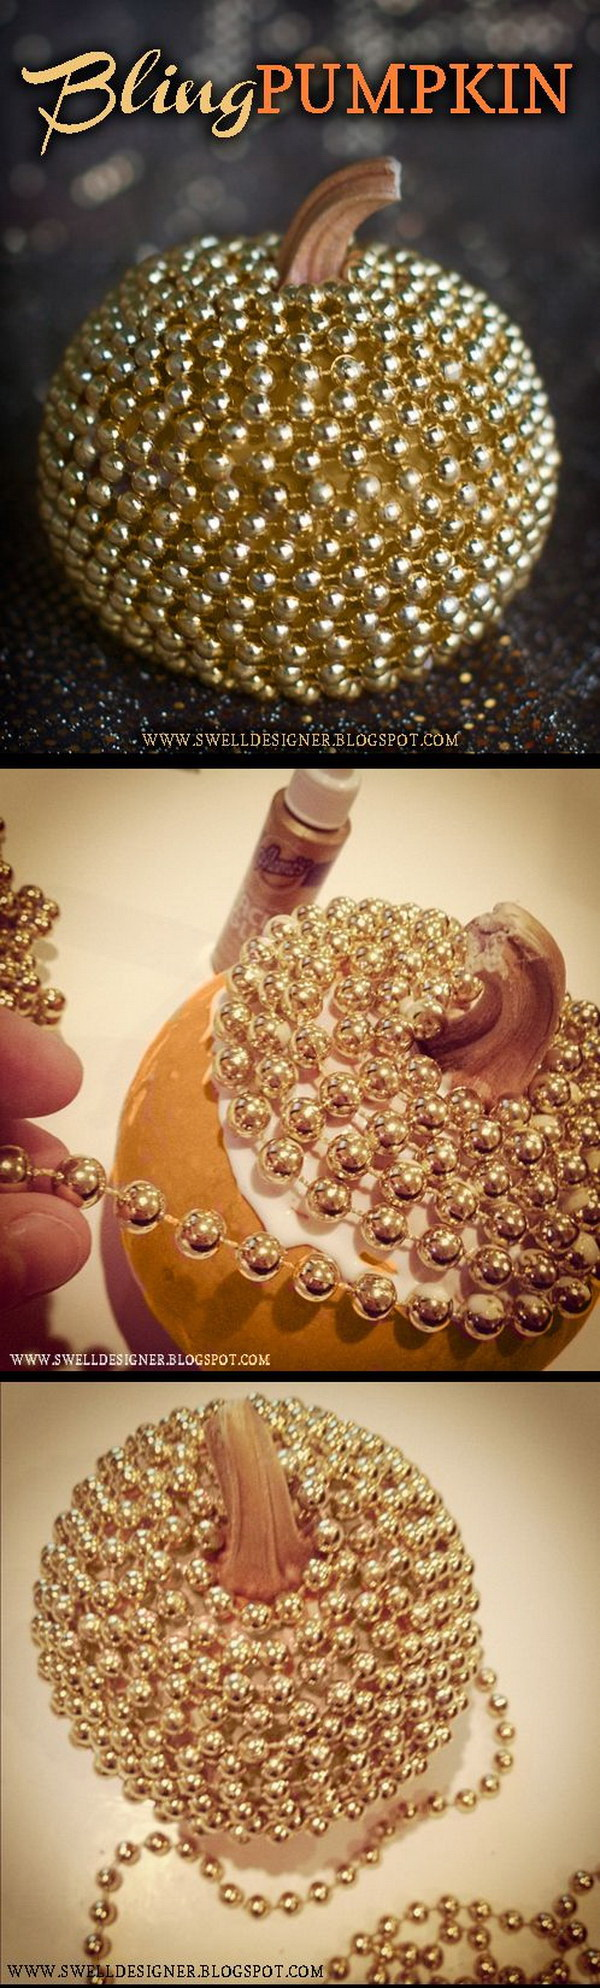 DIY Gold Bling Pumpkin. Make a cool and stylish metallic pumpkin as a fall decoration! What you need are Tacky Glue and a string of gold mardi gras beads. It will surely add a sophisticated look to your decor!